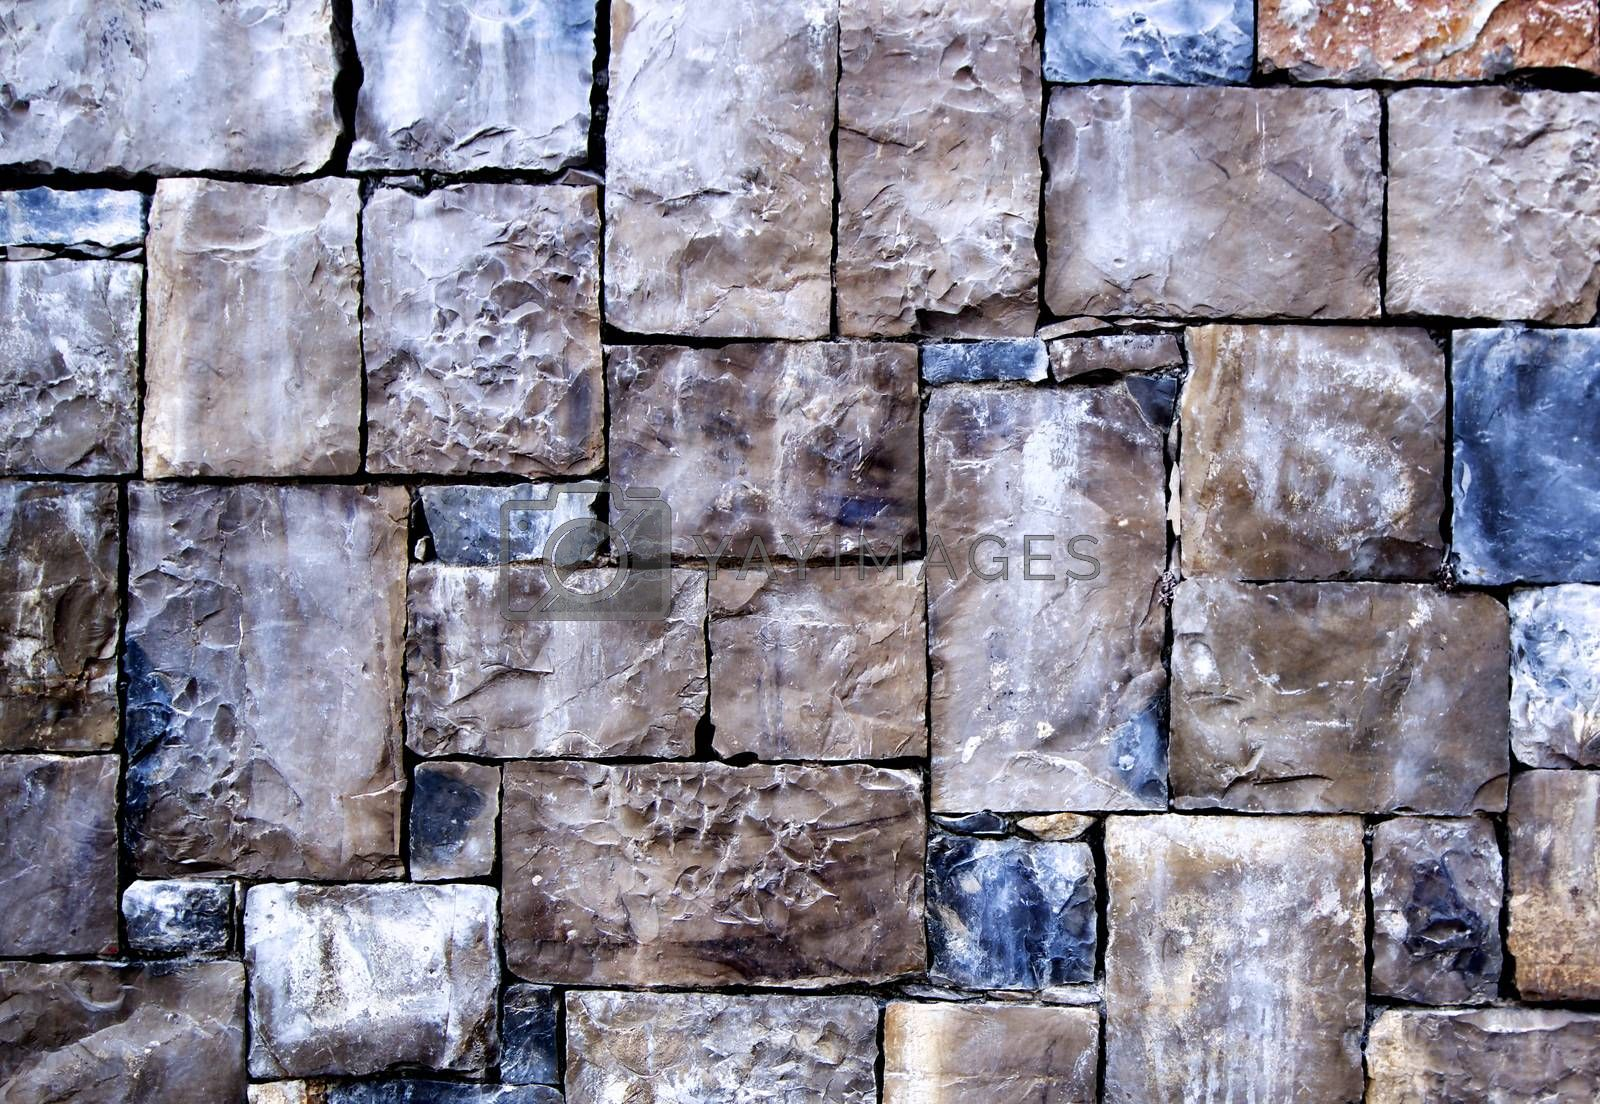 Background of Multi-Colored Cobblestones with Sharp Spears closeup Outdoors